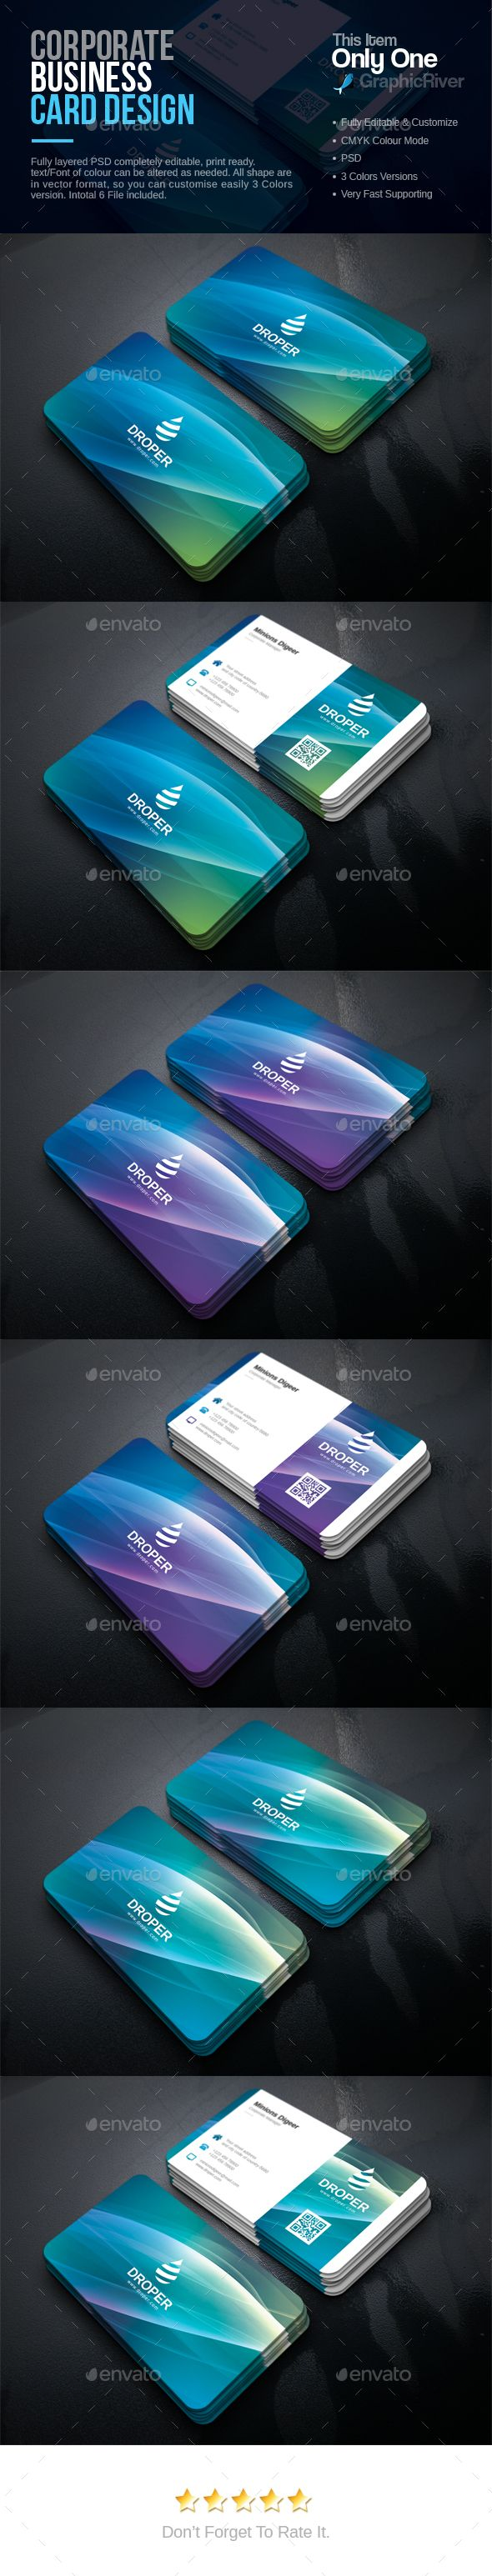 #Corporate #Business Card - Corporate Business #Cards Download here: https://graphicriver.net/item/corporate-business-card/17338101?ref=alena994